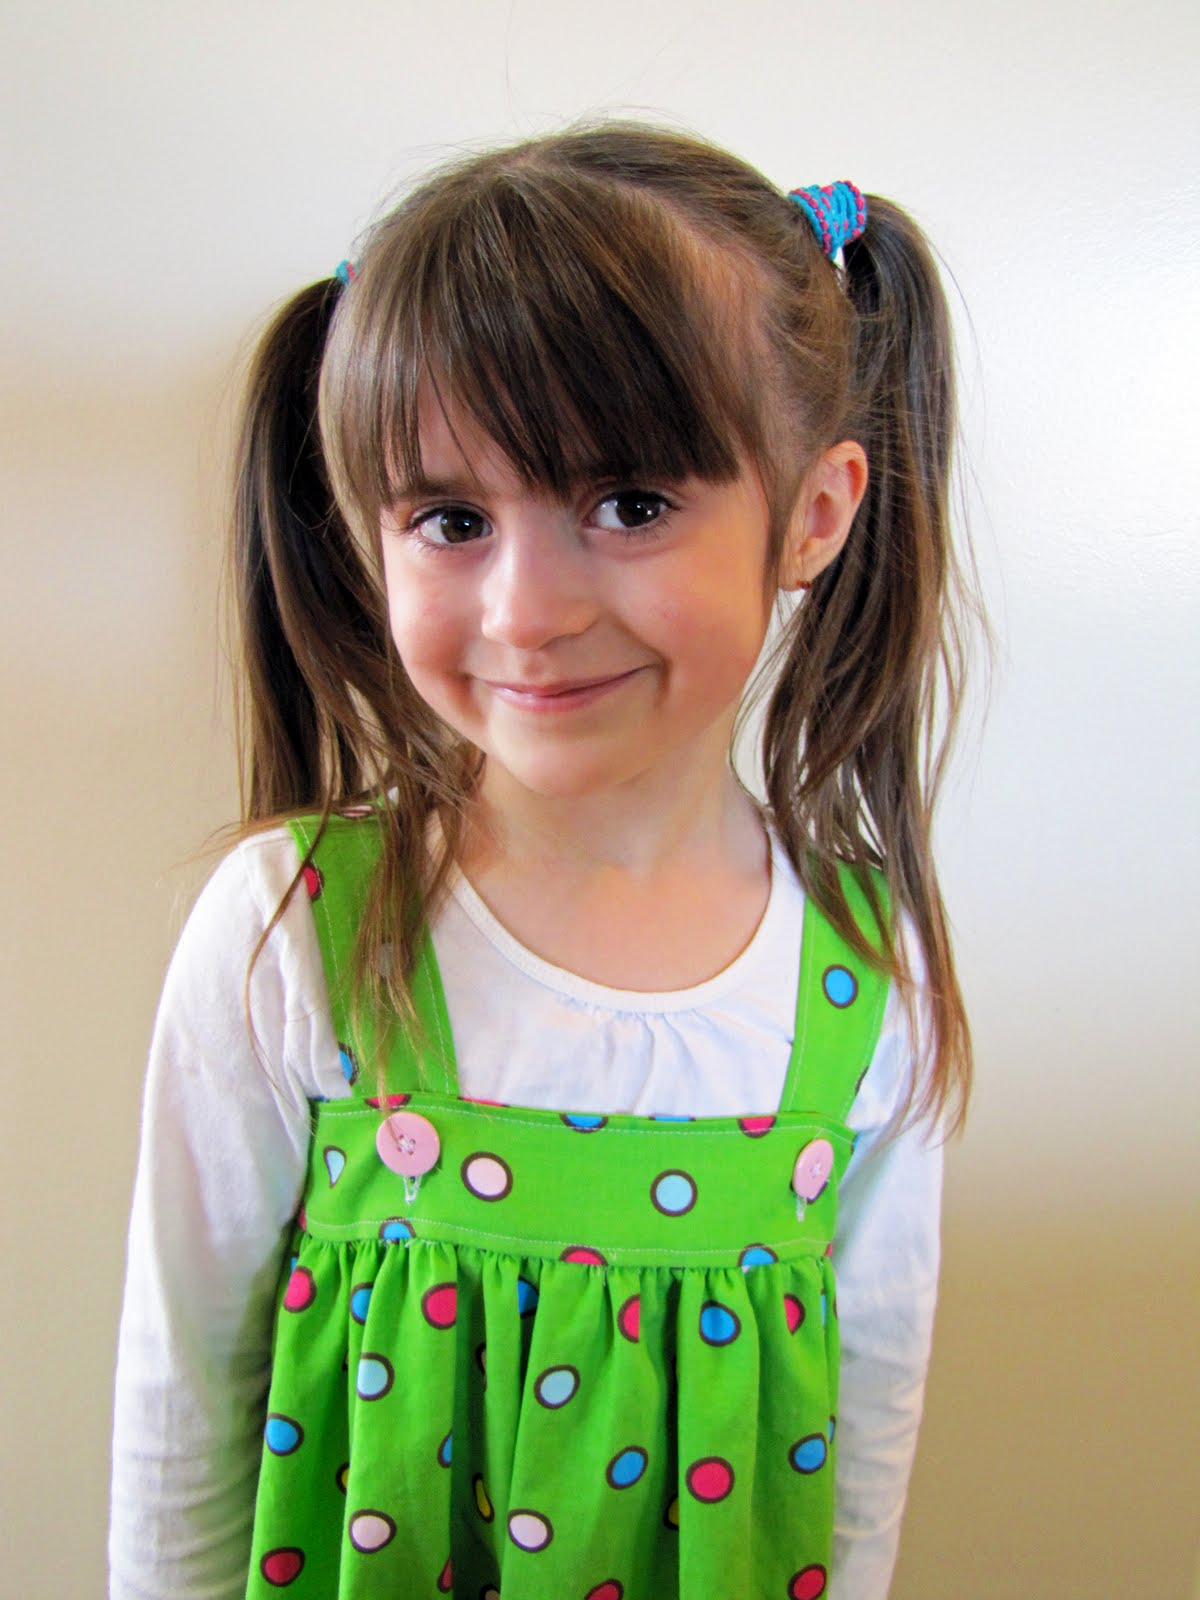 Little Girls Nails And Girls On Pinterest: E Txt: Cute Hairstyles For Little Girls